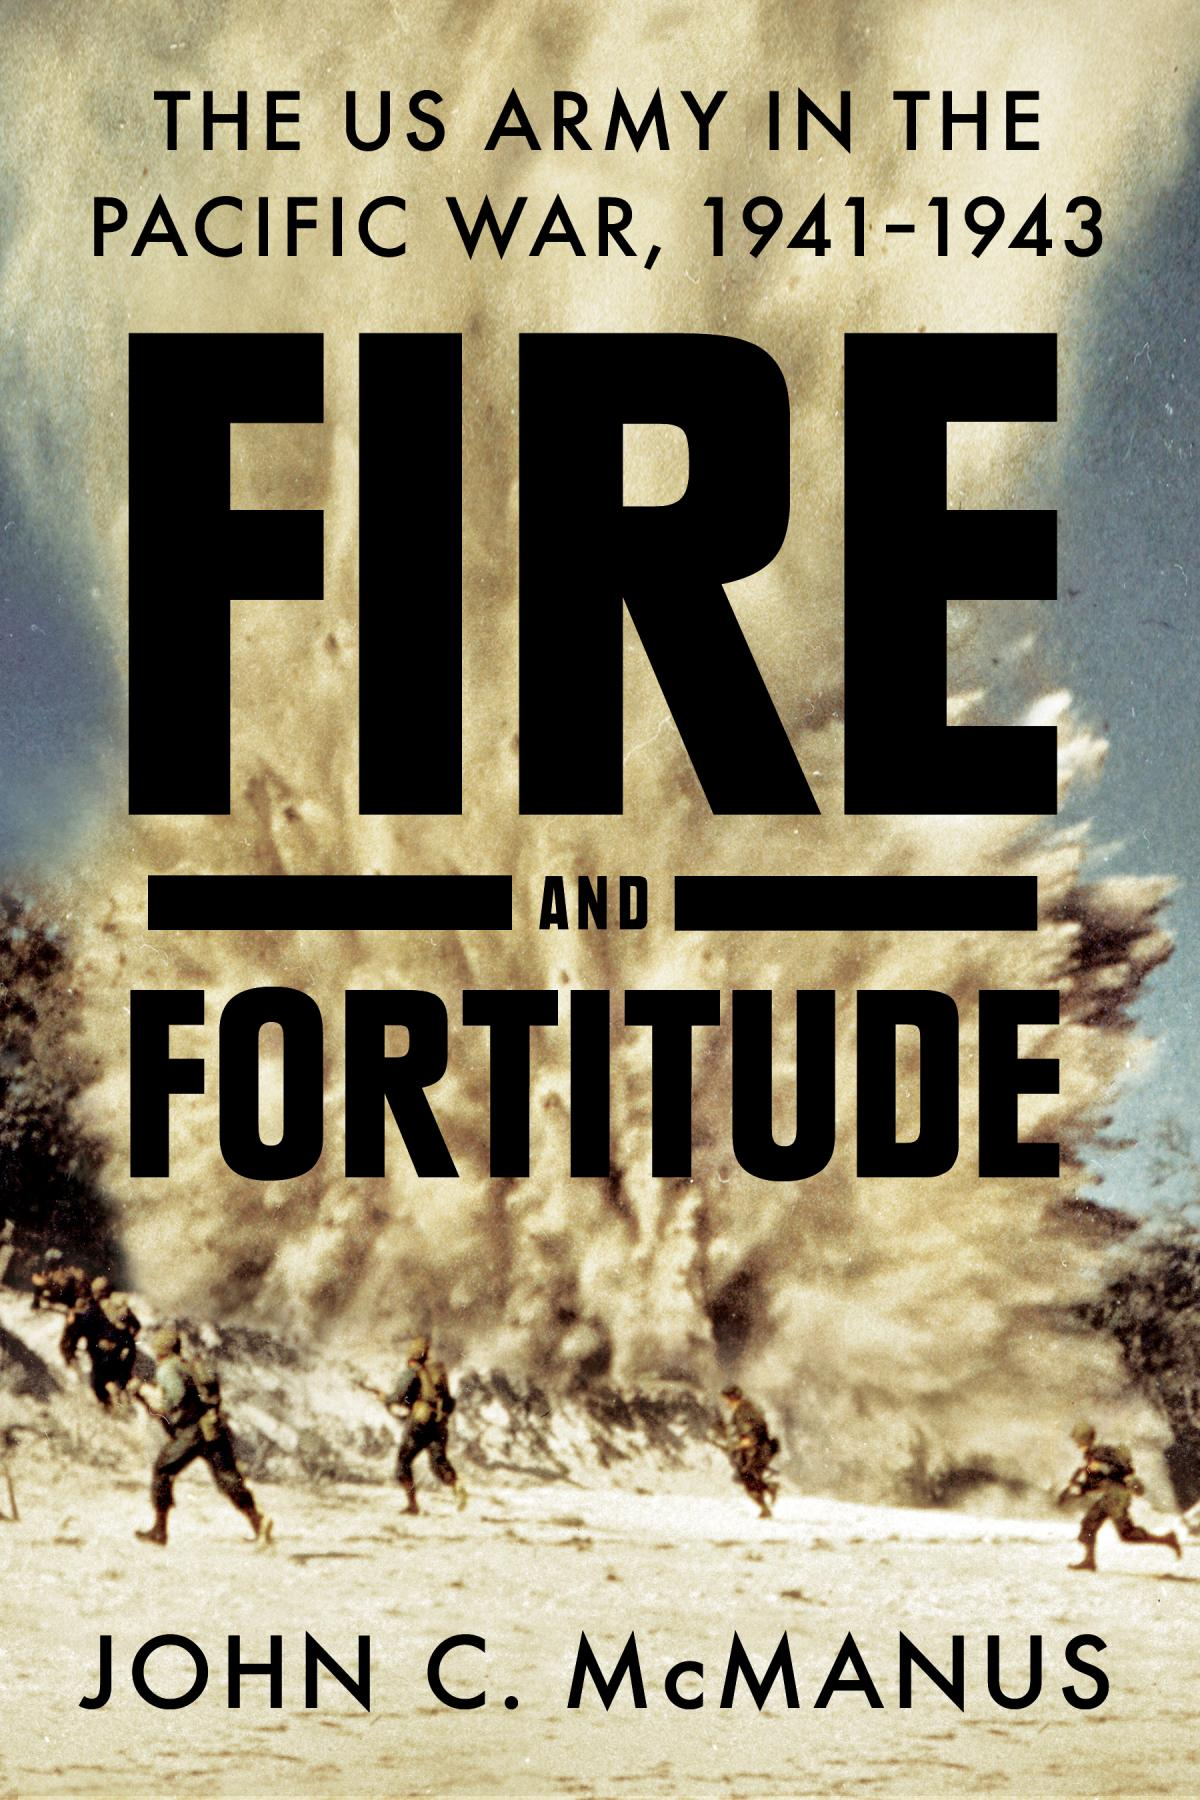 Cover of Fire and Fortitude by John C. McManus